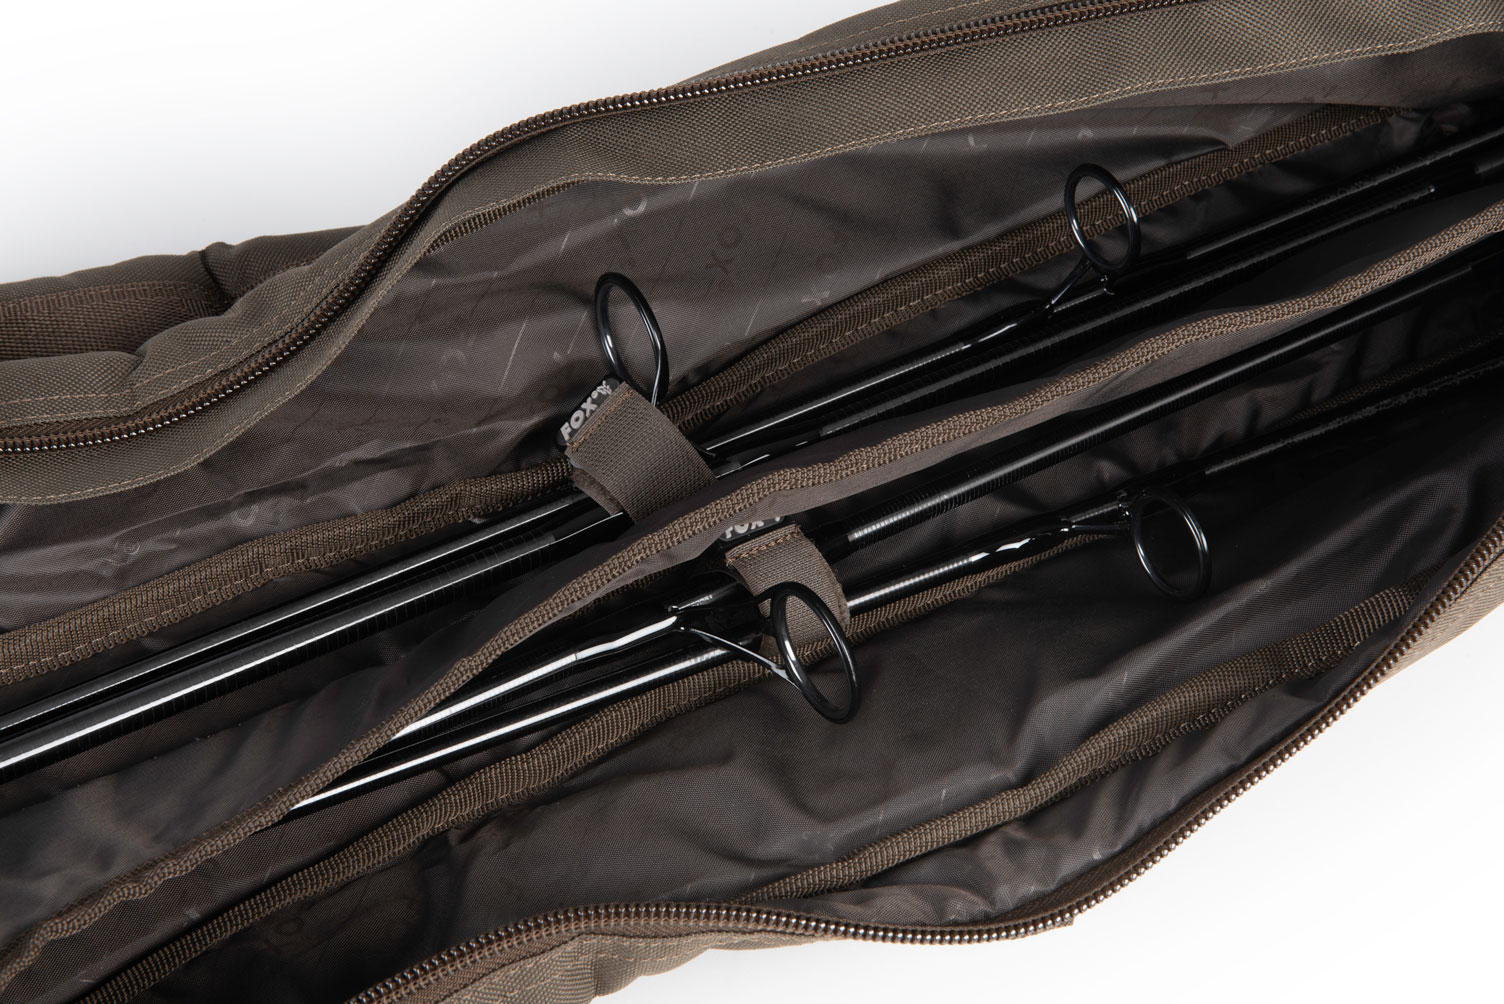 explorer_2_rod_bag_rods_in_situ_top_section_detailjpg